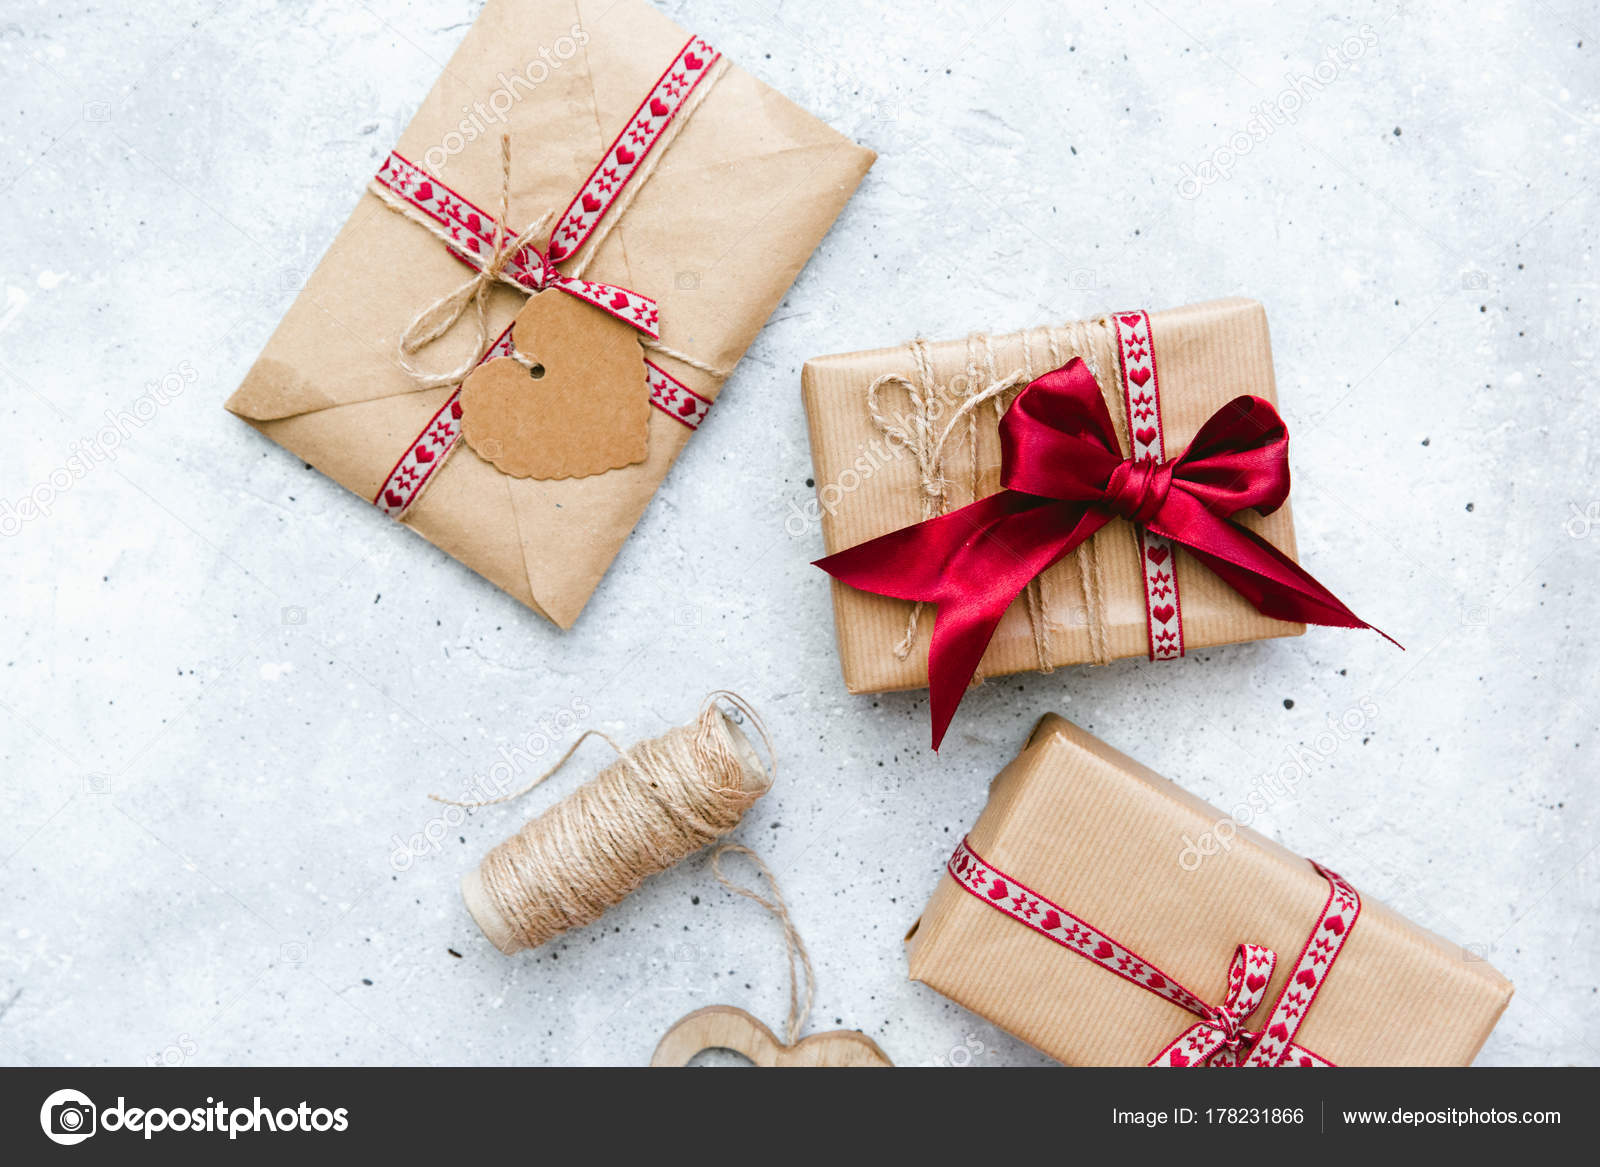 Gift wrapped boxes red decorative heart vintage background stock gift wrapped boxes red decorative heart vintage background stock photo negle Images